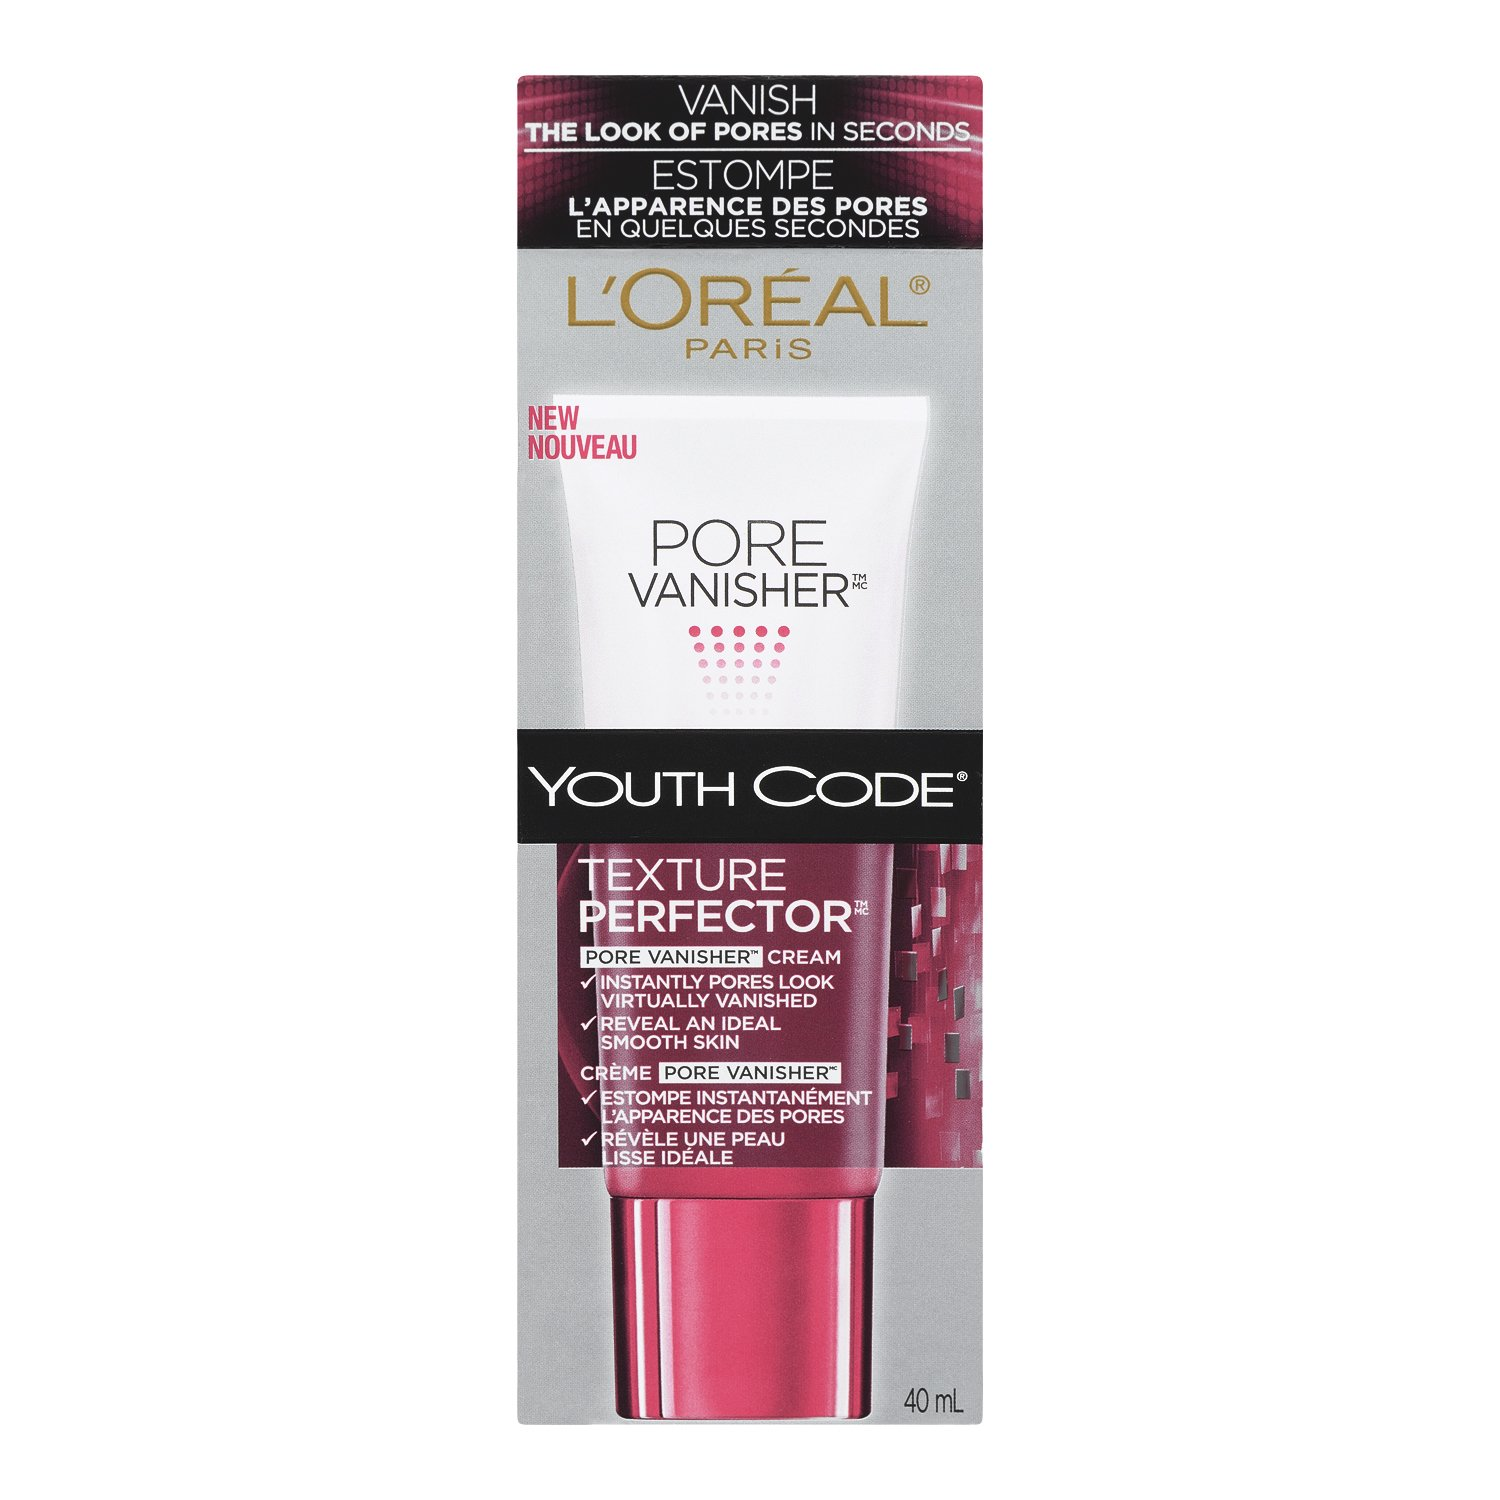 L'Oreal Paris Youth Code Texture Perfector Pore Vanisher Facial Cream